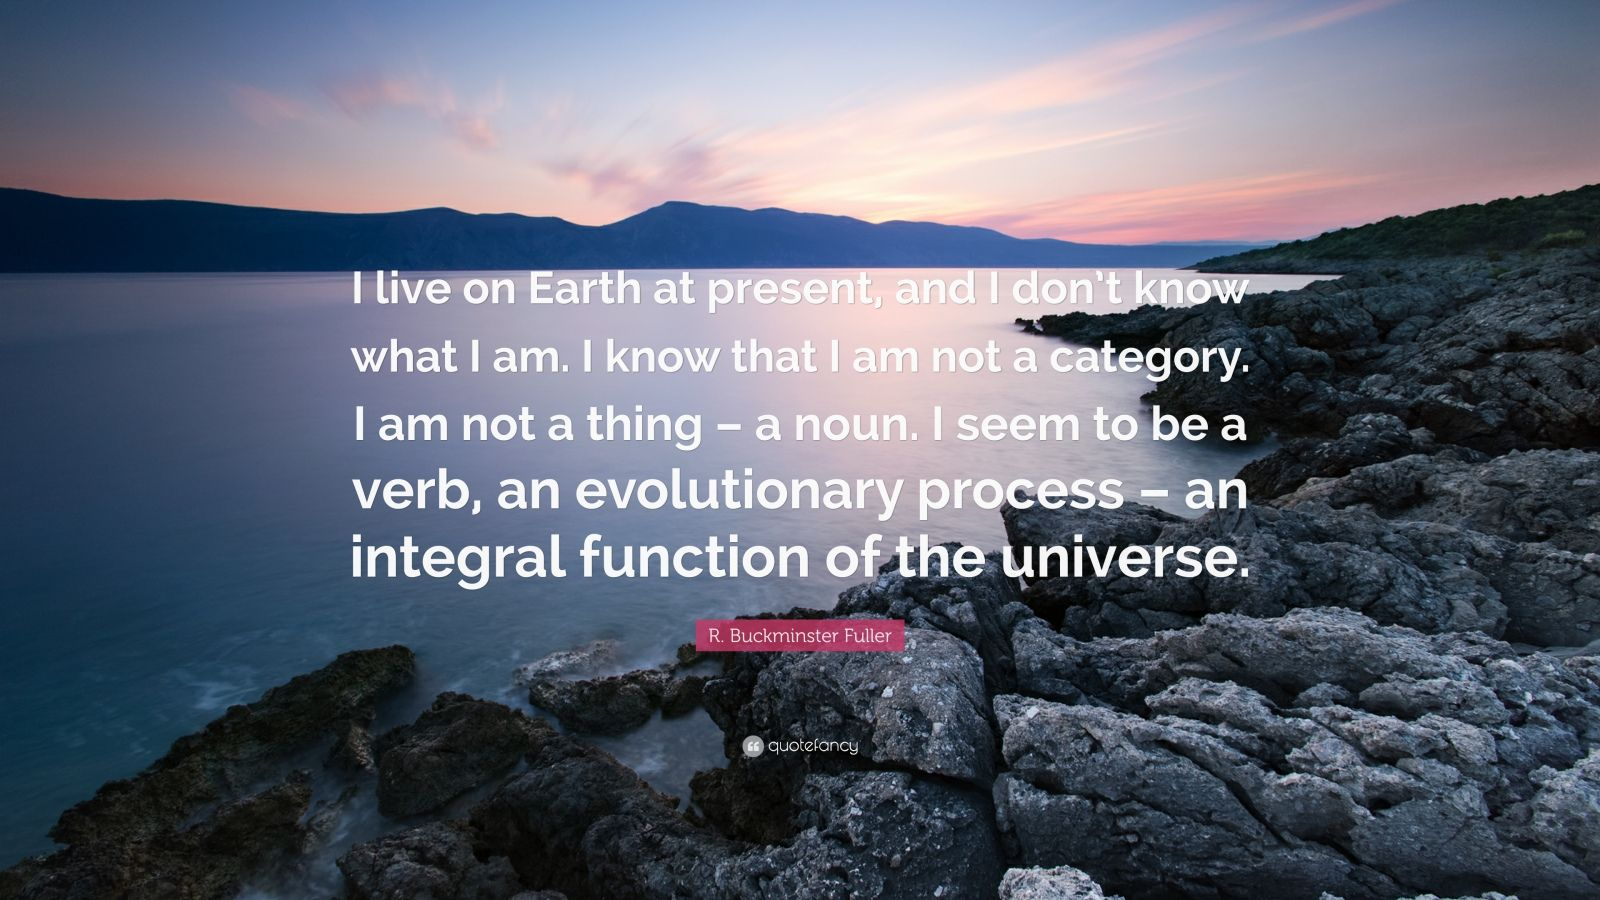 """R. Buckminster Fuller Quote: """"I live on Earth at present, and I don't know what I am. I know that I am not a category. I am not a thing – a noun. I seem to be a verb, an evolutionary process – an integral function of the universe."""""""